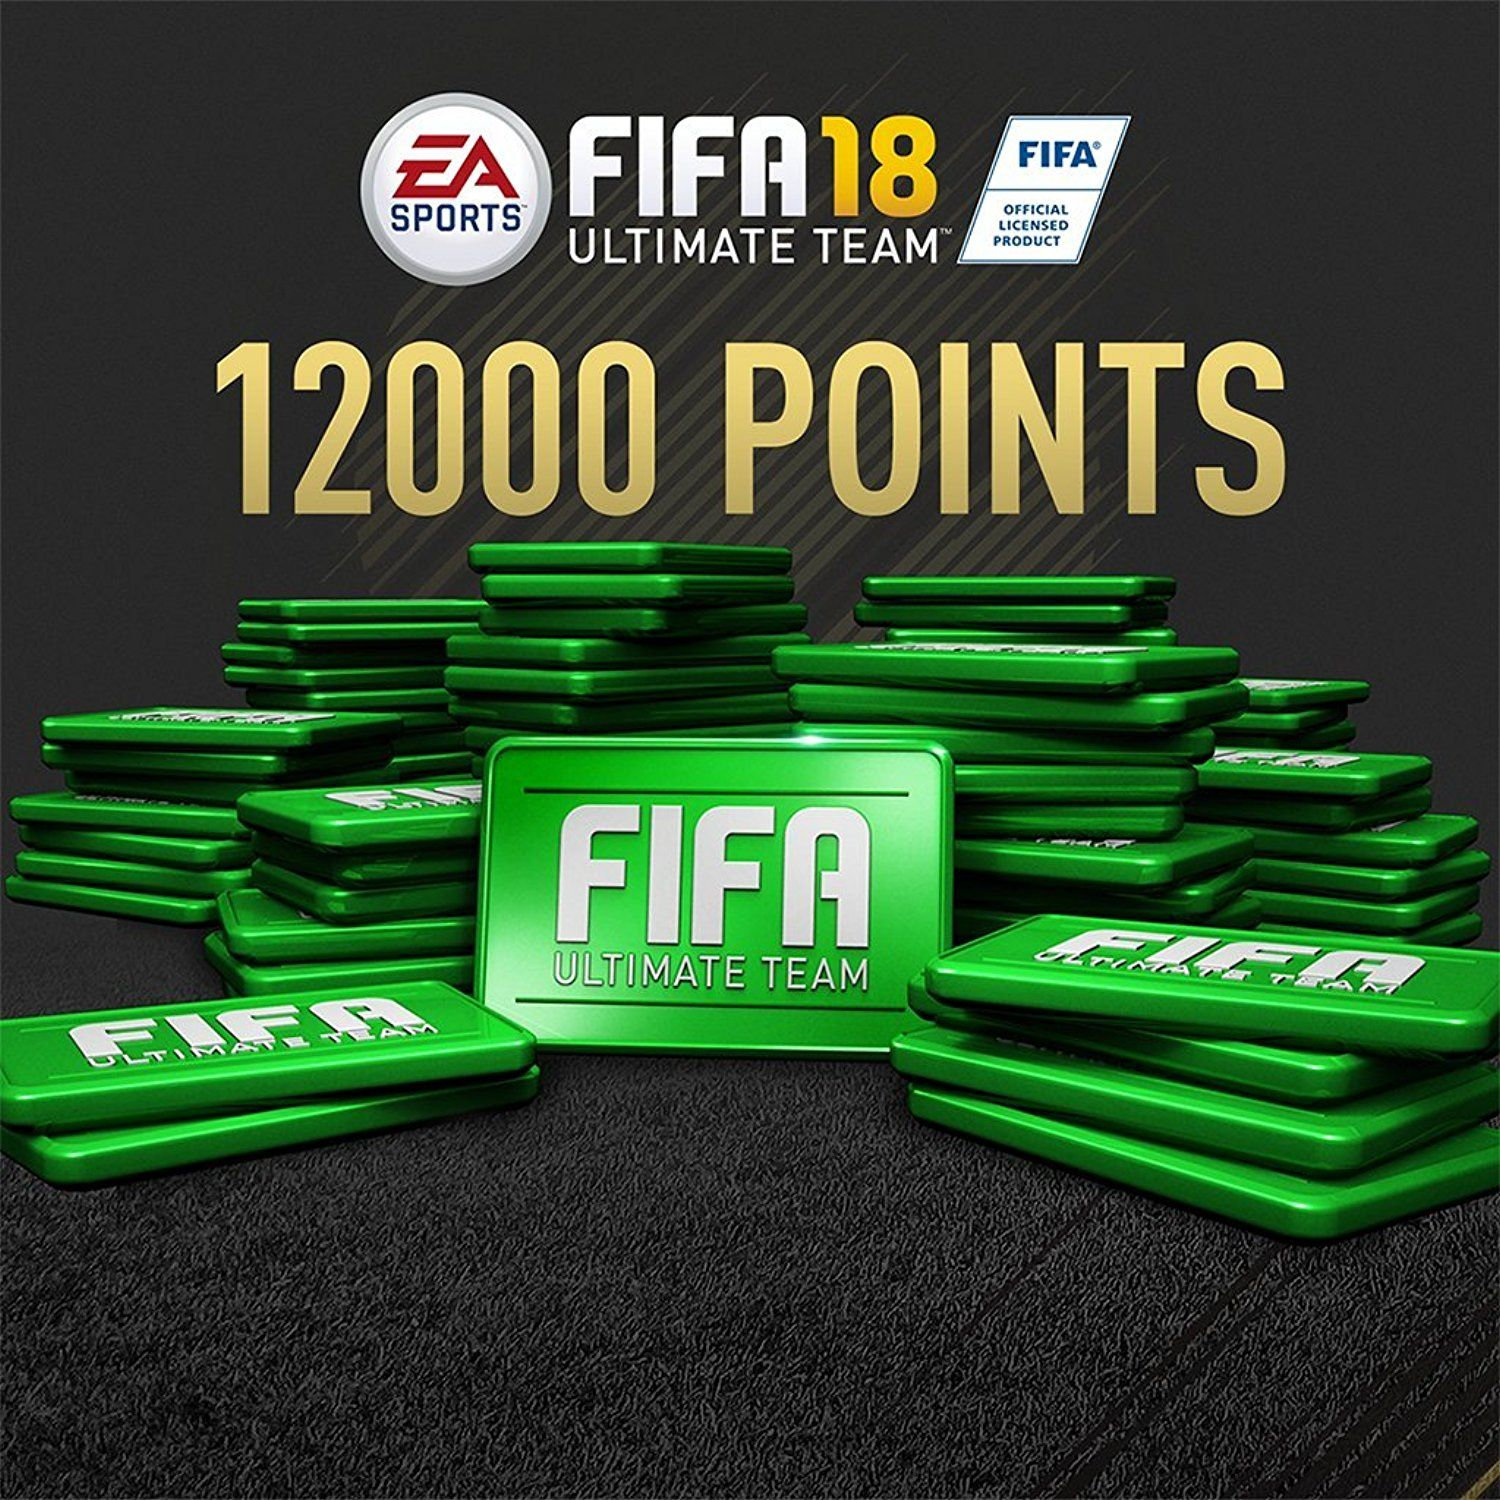 Fifa 18 12000 Points Ps4 Digital Code Find Out More 3ds Metroid Samus Returns Special Edition Reg Us About The Great Product At Image Link This Is An Affiliate Videogames